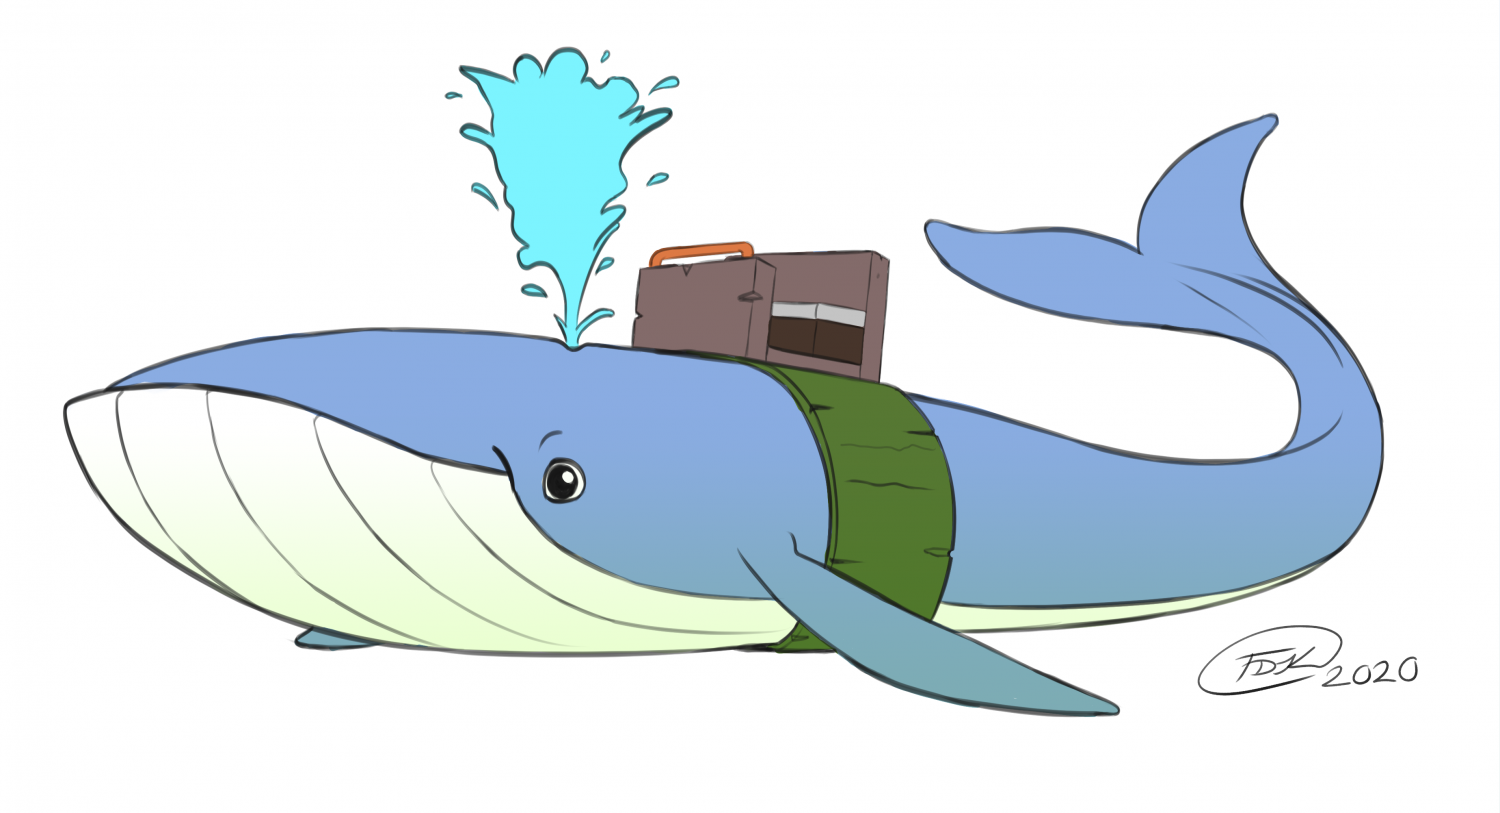 Whale.thumb.png.03bd1fdcbf8c7ed35fdcfcc49ee6b7de.png